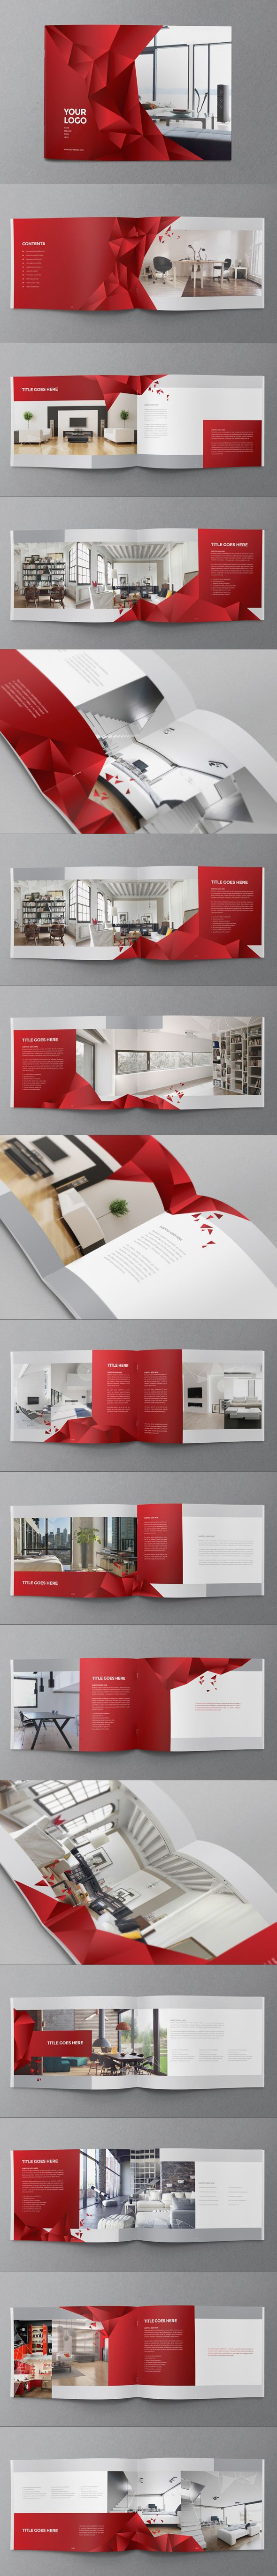 Interior Design Brochure by Abra Design, via Behance